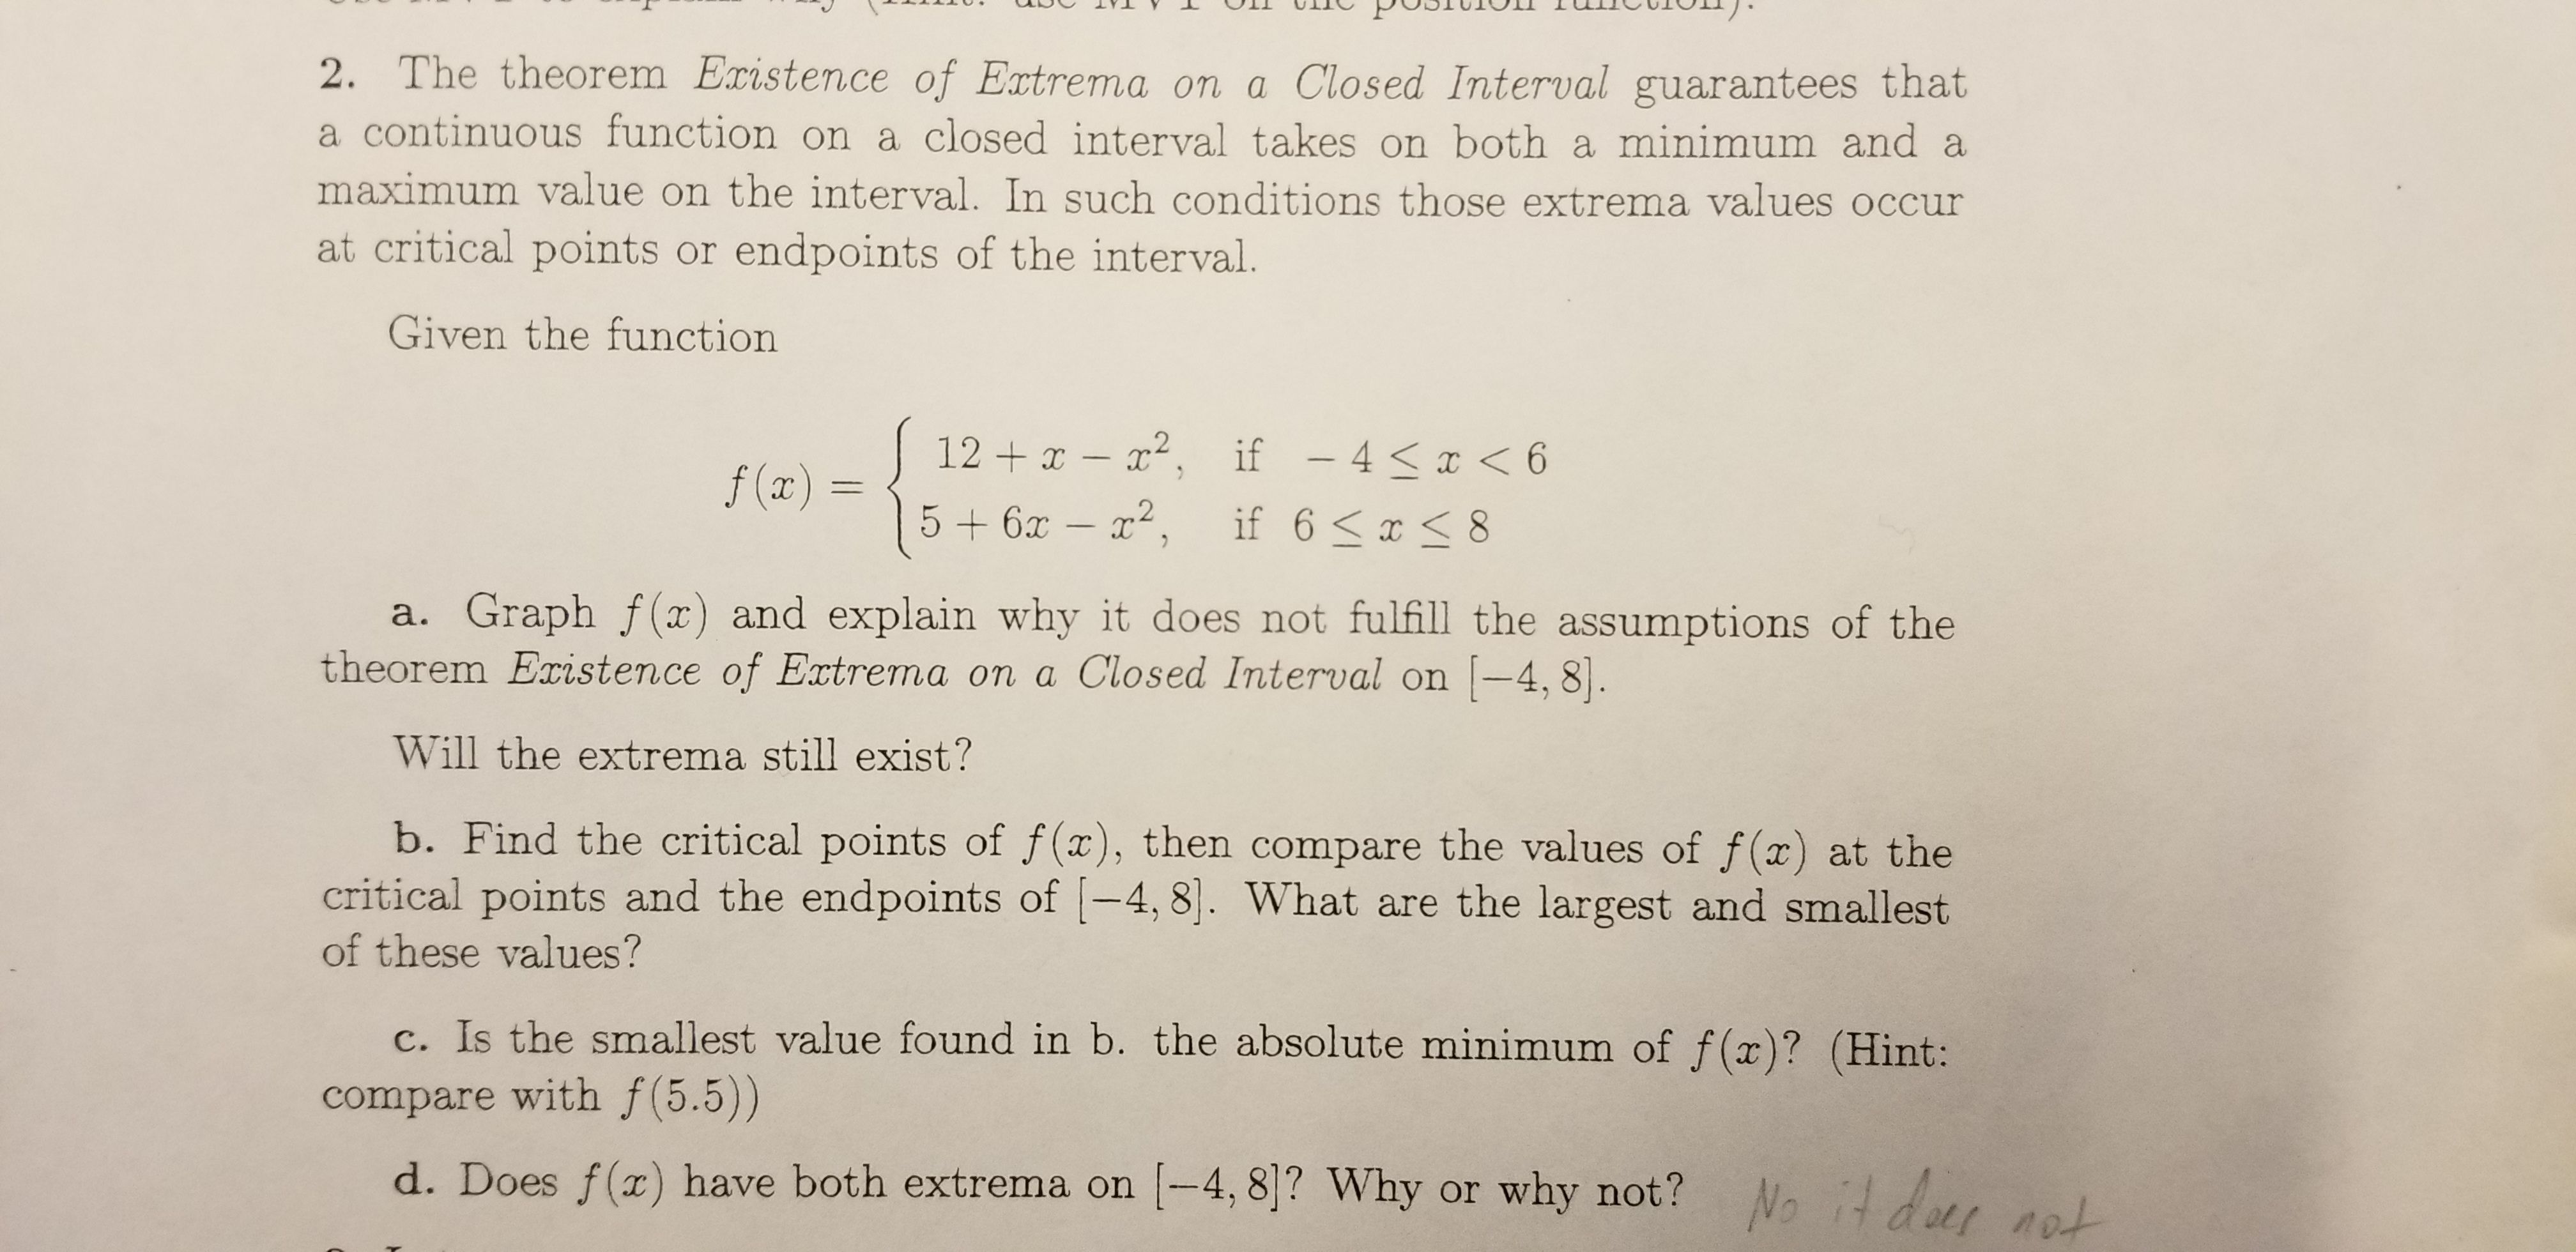 2. The theorem Existence of Extrema on a Closed Interval guarantees that a continuous function on a closed interval takes on both a minimum and a maximum value on the interval. In such conditions those extrema values occur at critical points or endpoints of the interval. Given the function 12 x - 2, if - 4x < 6 5+6x- 2, f(x) if 6 x 8 TC a. Graph f(x) and explain why it does not fulfill the assumptions of the theorem Existence of Extrema on a Closed Interval on -4, 8 Will the extrema still exist? b. Find the critical points of f(x), then compare the values of f(x) at the critical points and the endpoints of -4, 8. What are the largest and smallest of these values? Is the smallest value found in b. the absolute minimum of f(x)? (Hint: compare with f(5.5)) d. Does f(x) have both extrema on -4, 8]? Why or why not? No it der nat